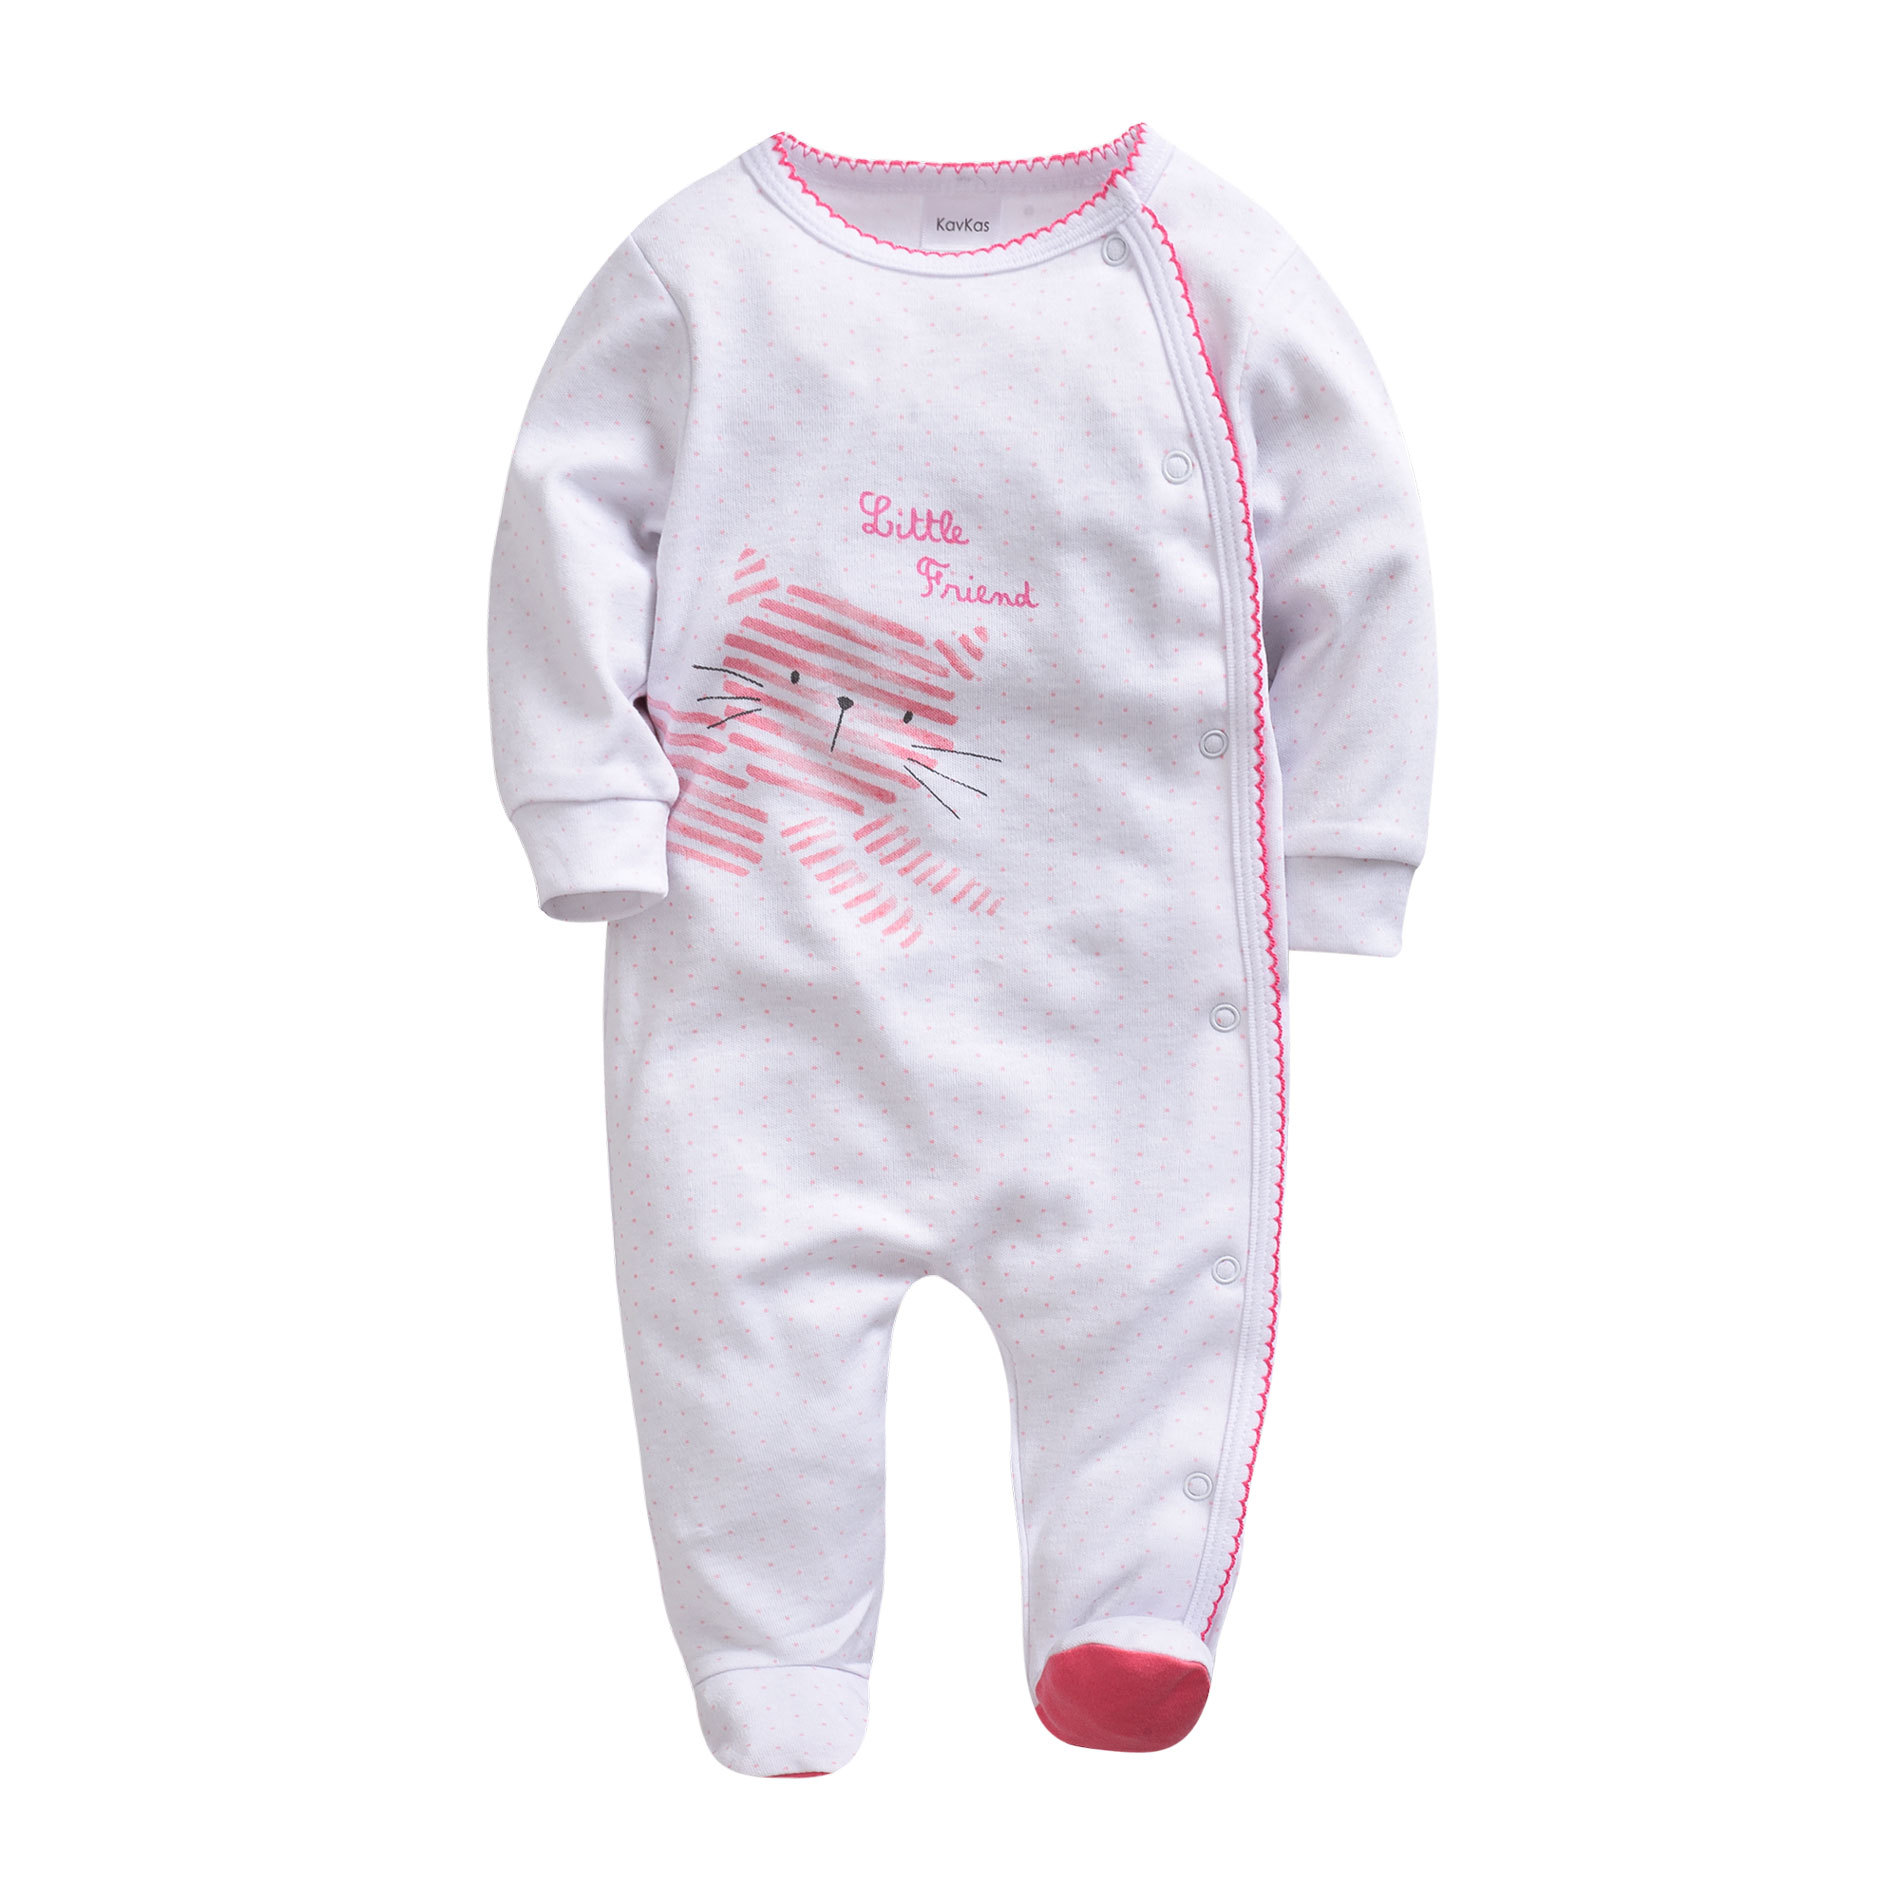 Morningtwo Newborn Baby Romper Clothes Stiped Long Sleeve Jumpsuit